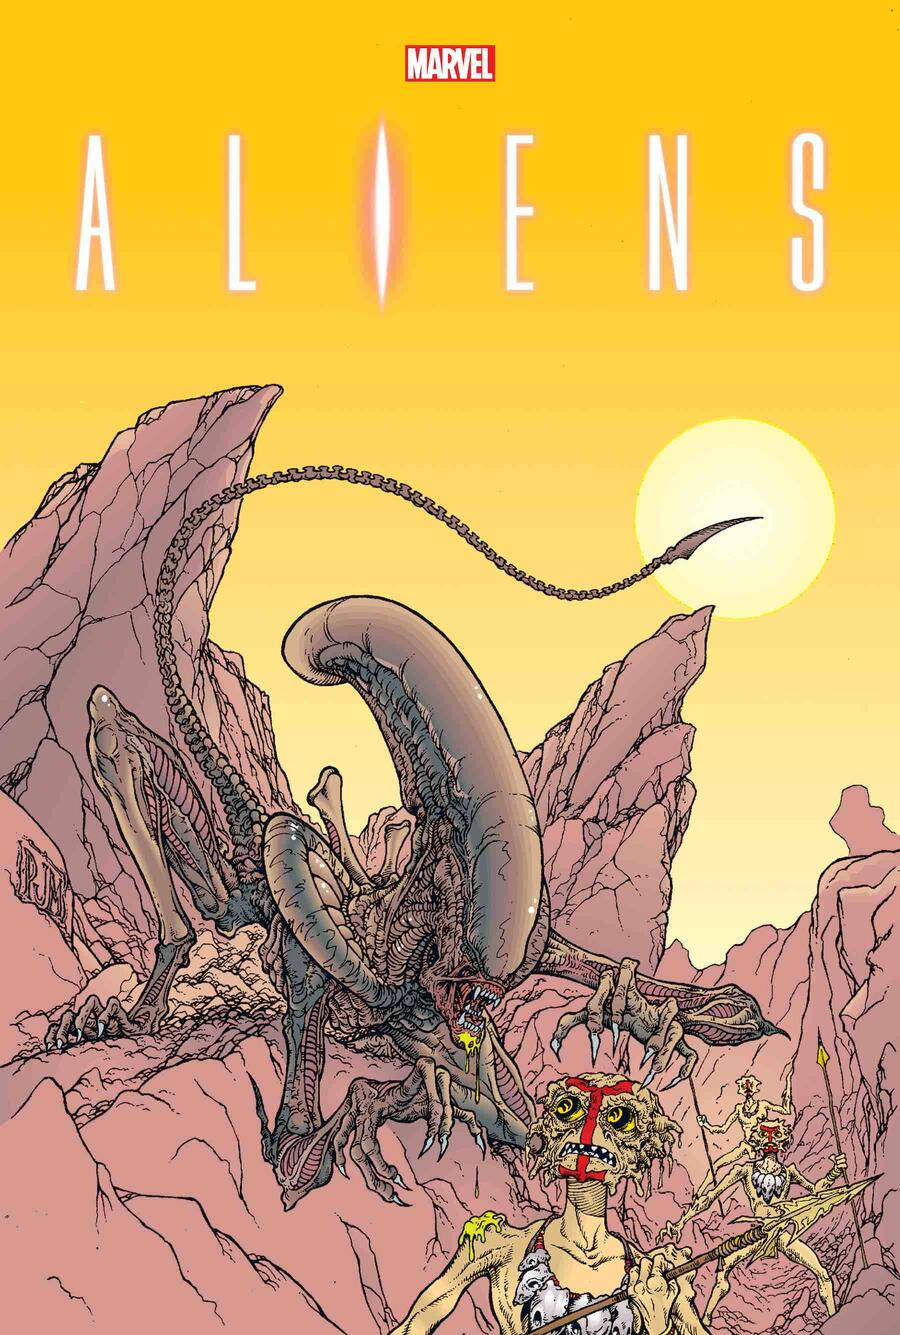 ALIENS: THE ORIGINAL YEARS OMNIBUS VOL. 2 direct market variant cover by Paul Mendoza